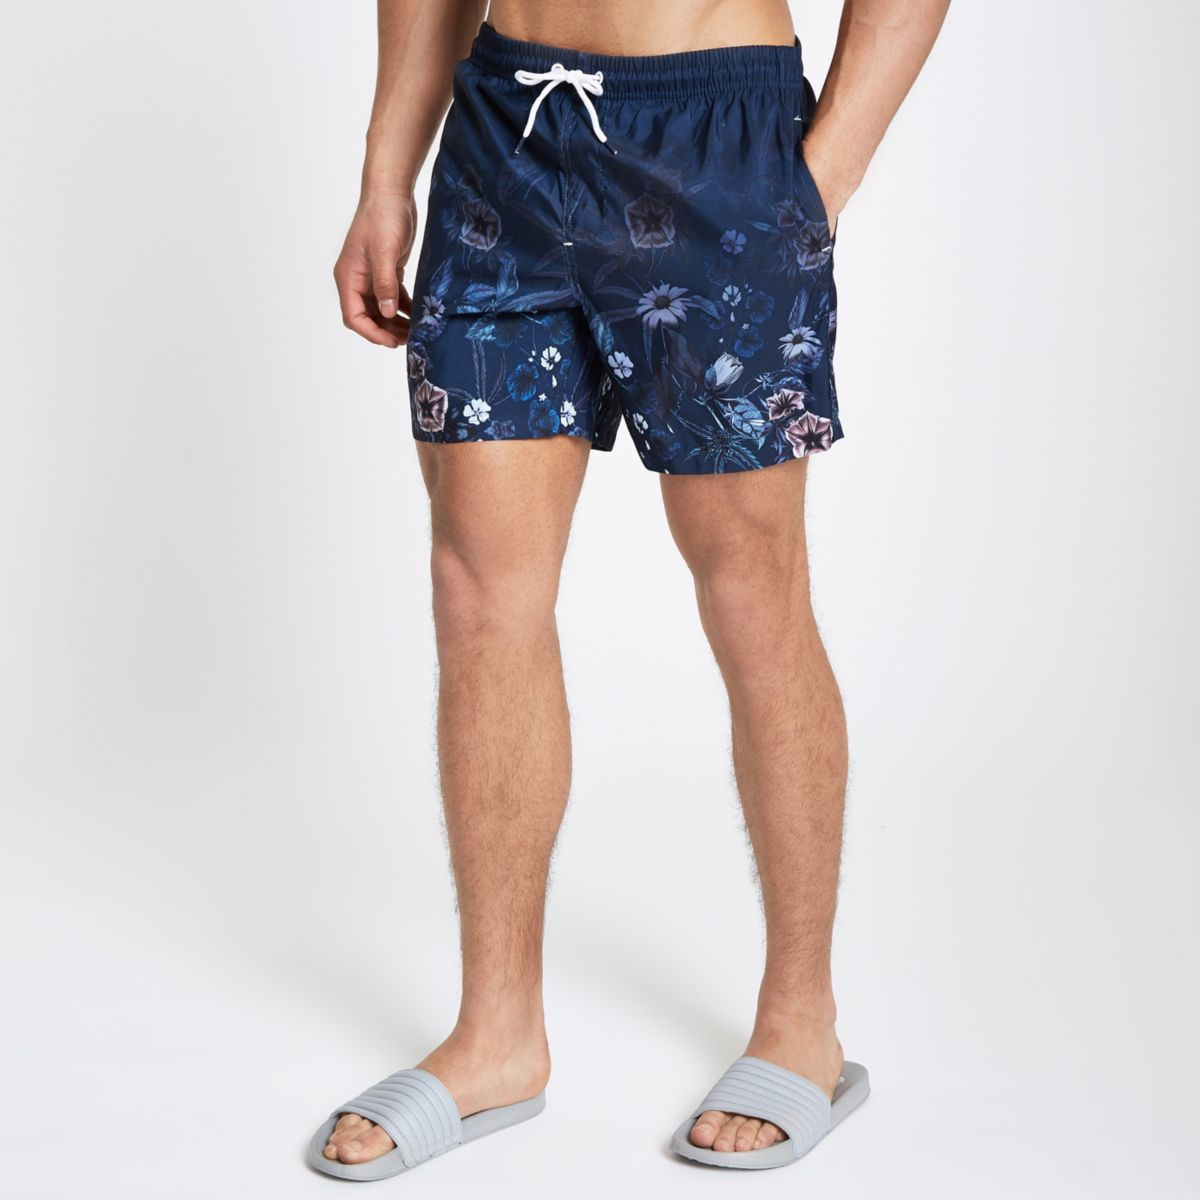 Navy floral fade swim shorts